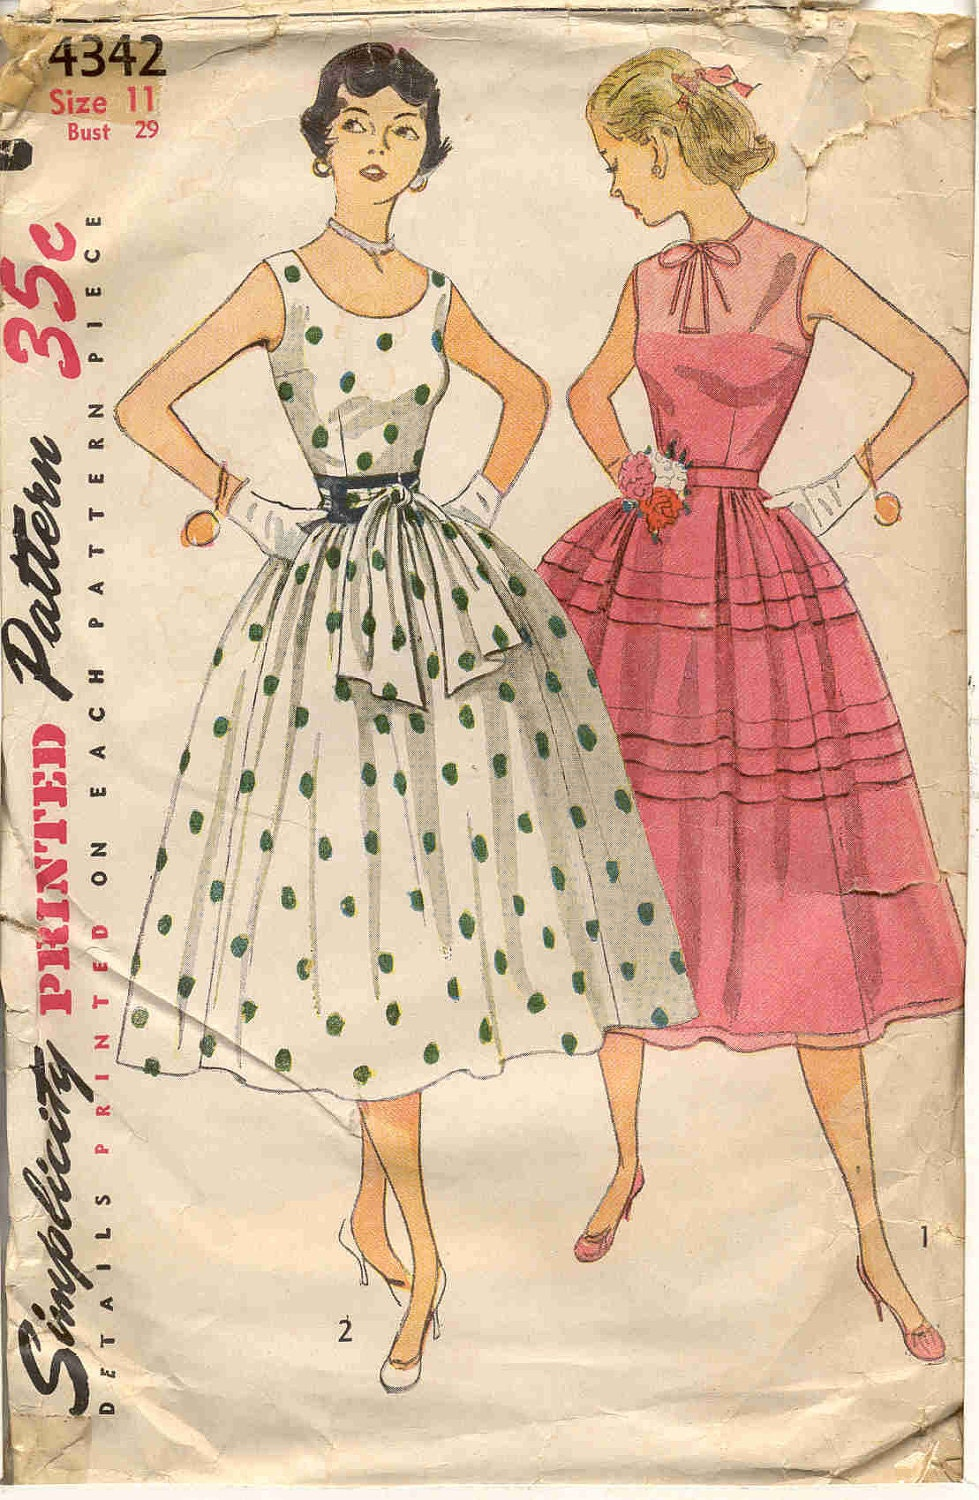 pics for gt 50s dress patterns